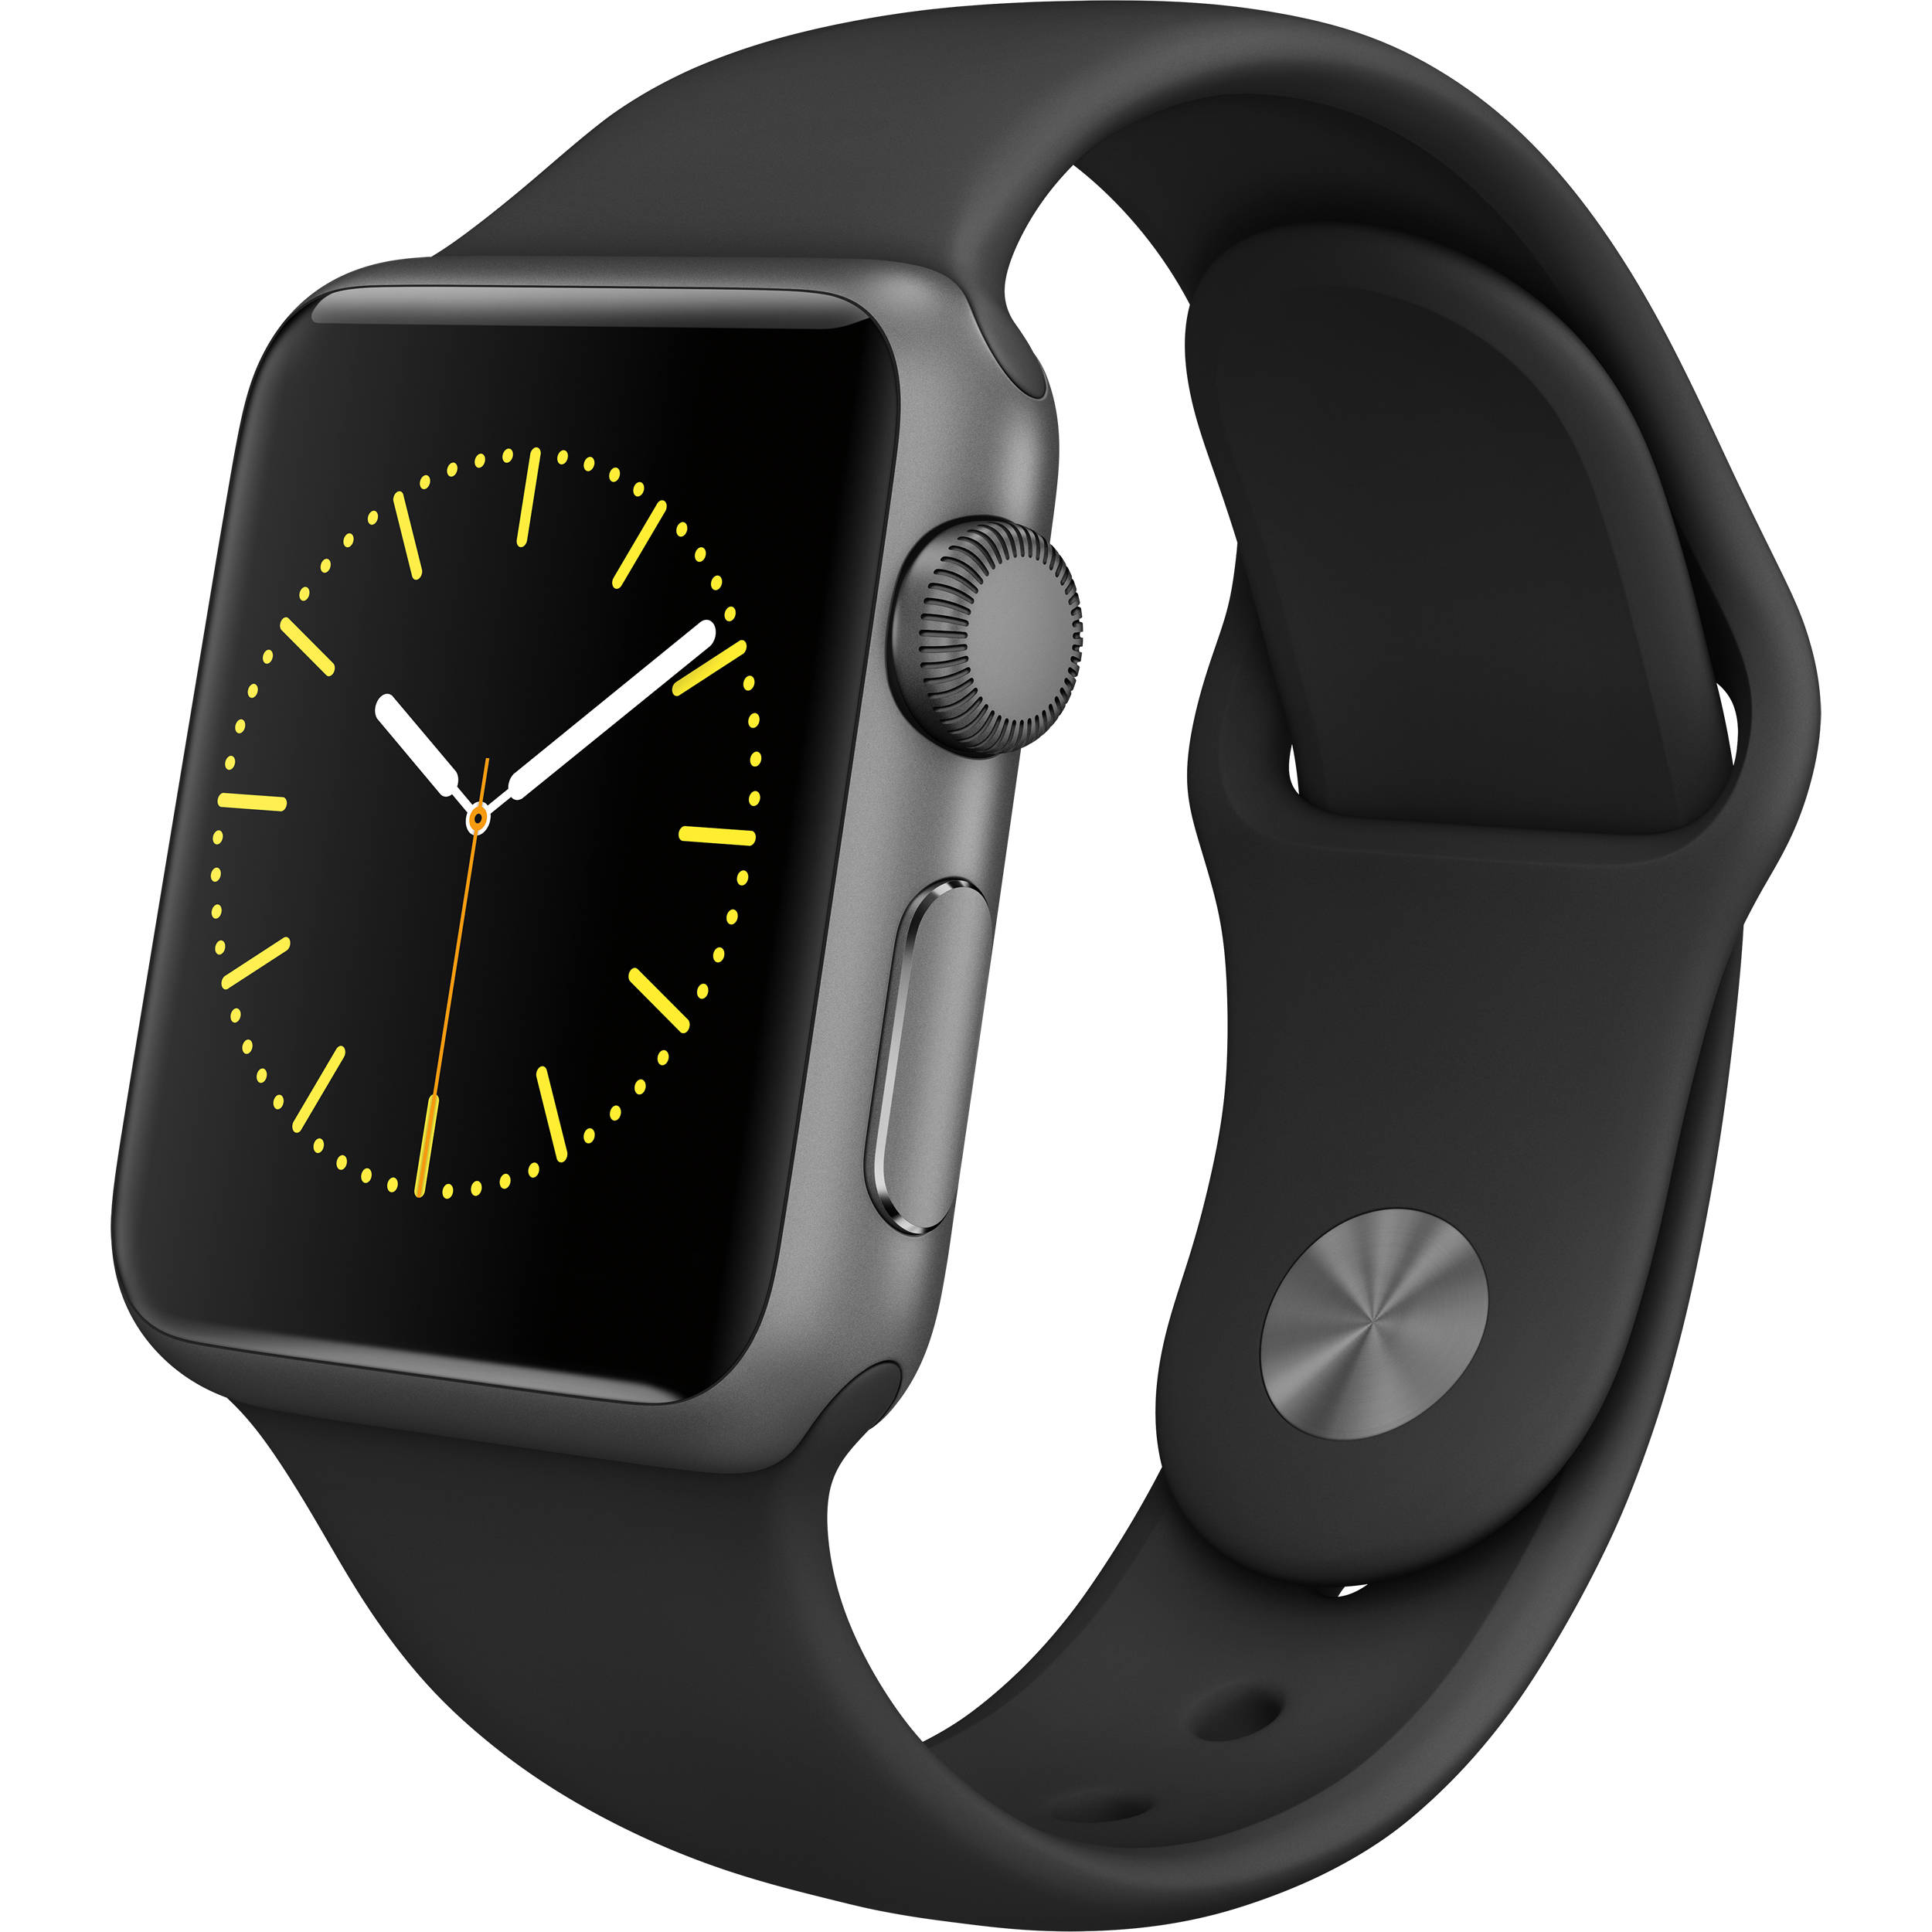 Resultado de imagen para smartwatch apple watch 38mm